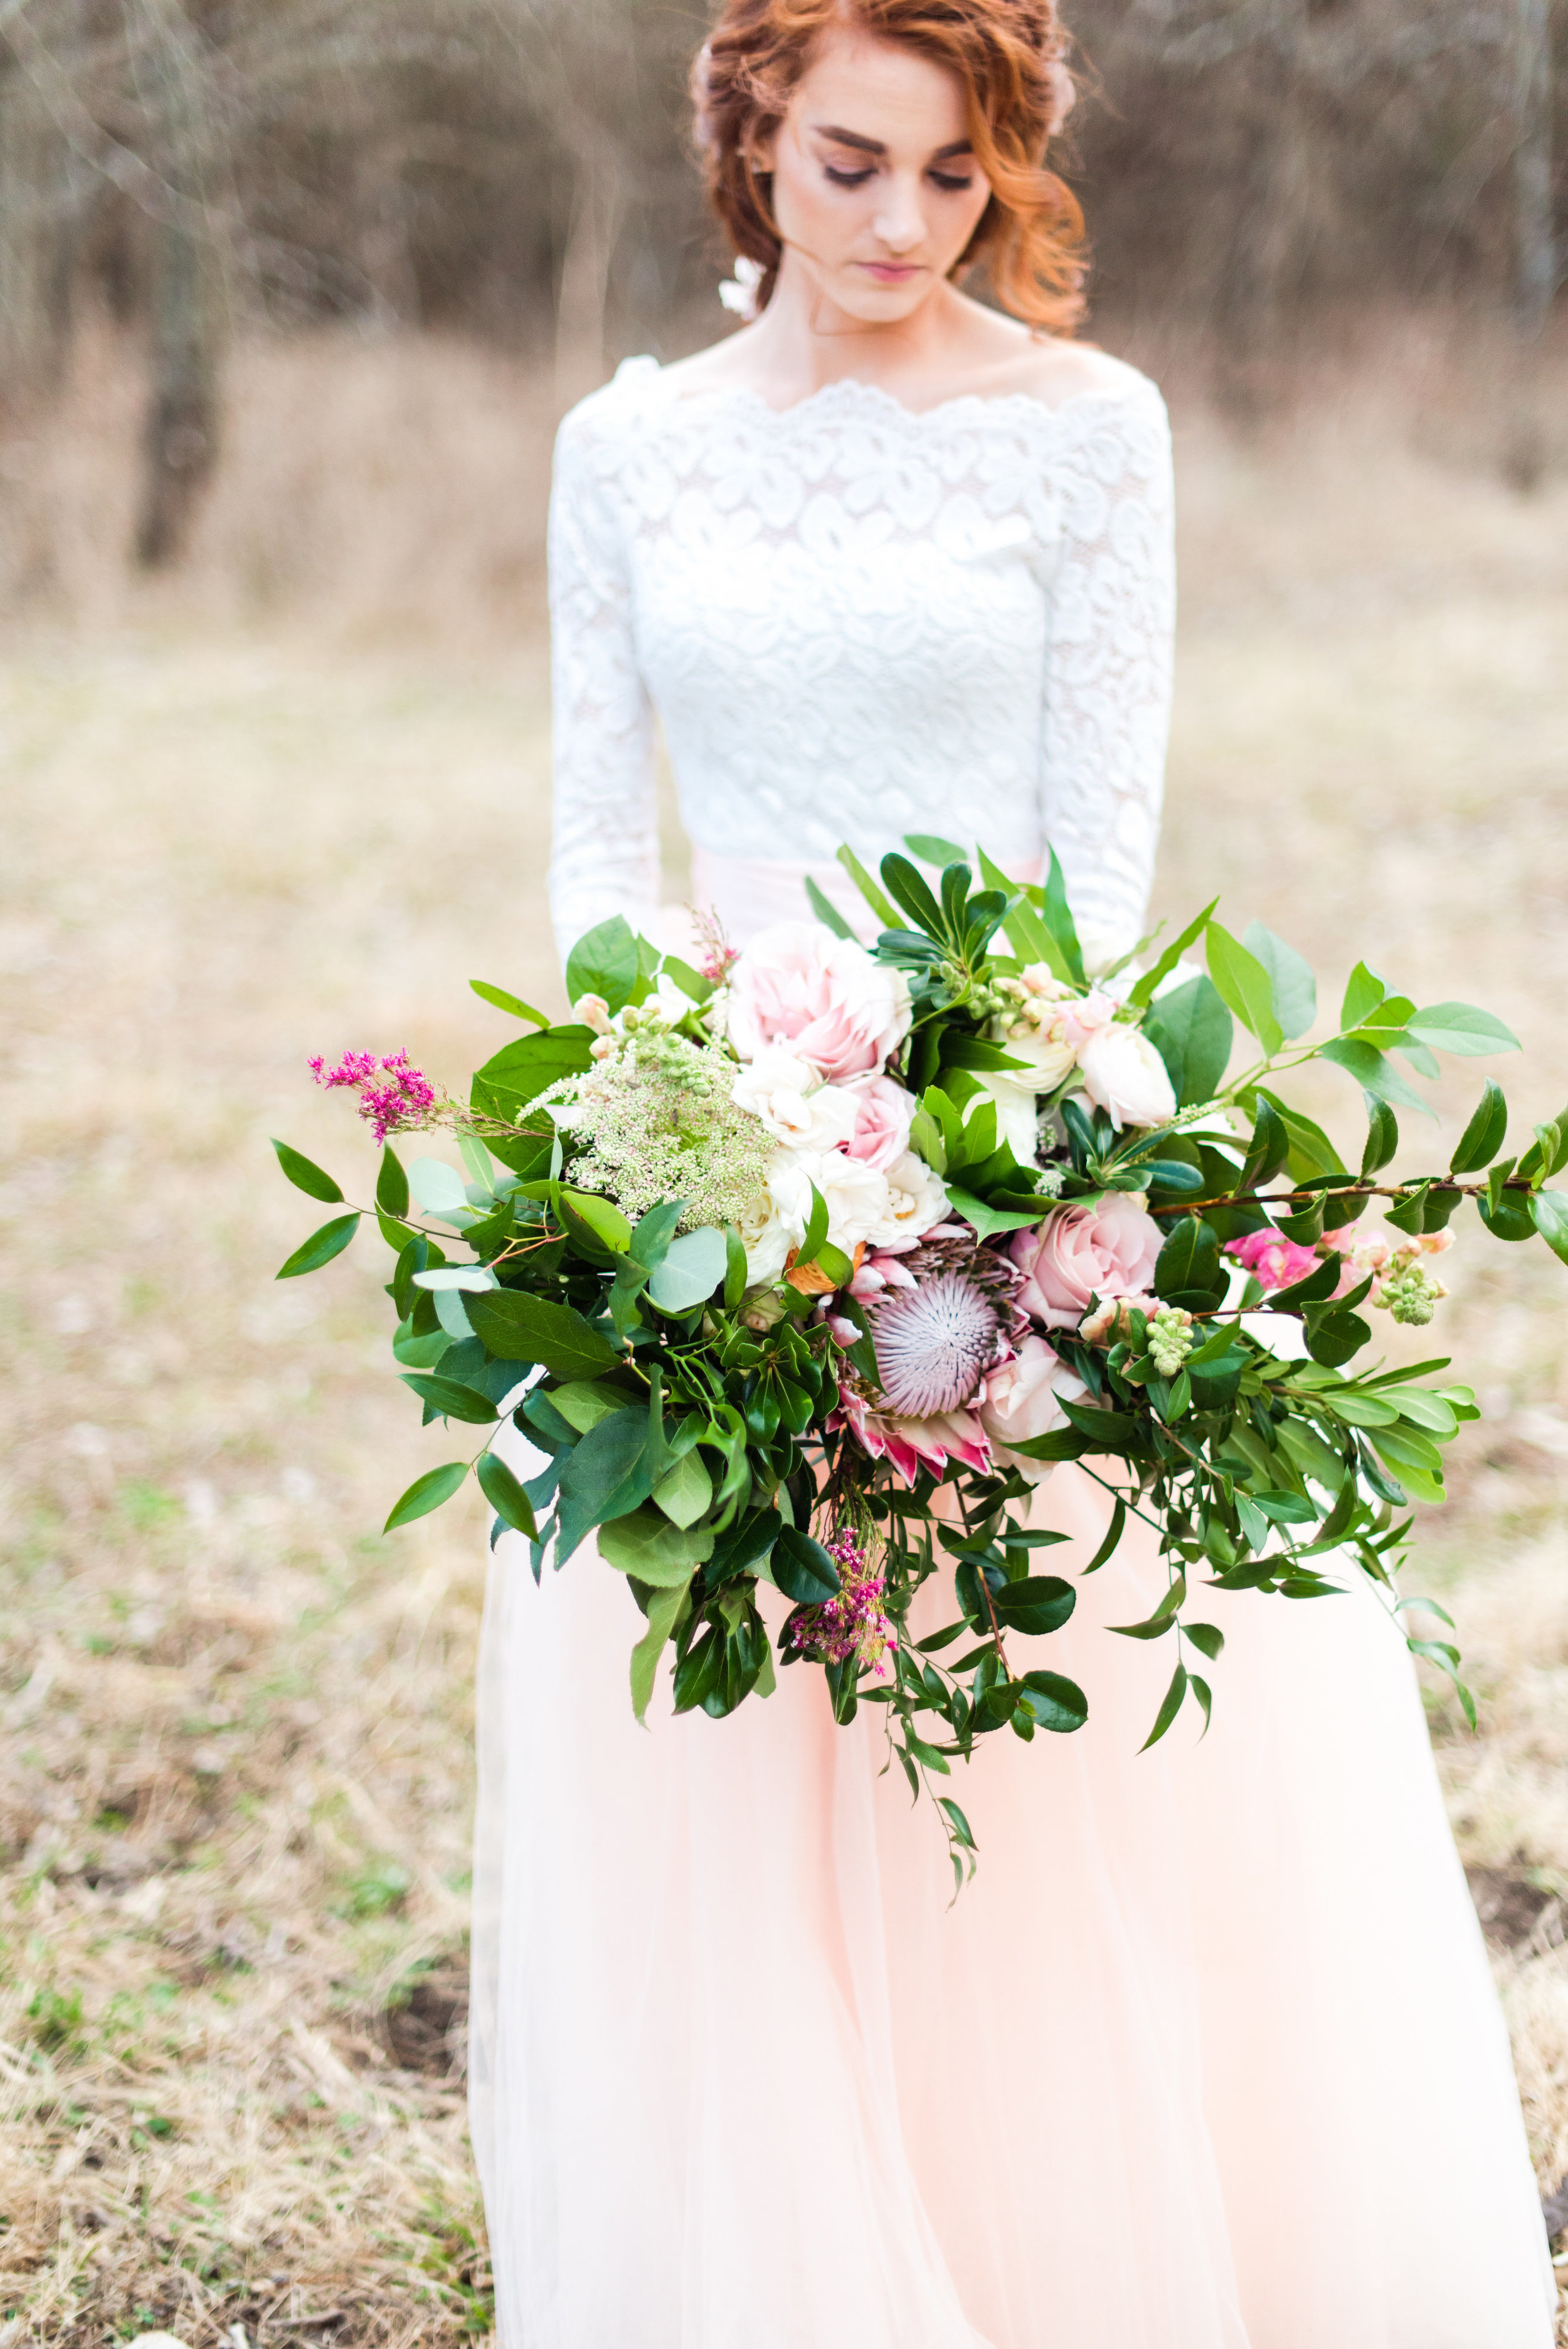 Large Wild Greenery-Focused Bouquet  Style: boho, woodland, organic Details: large king protea, full greenery, textures   {Photo courtesy of    Lacey Rene Studios   }